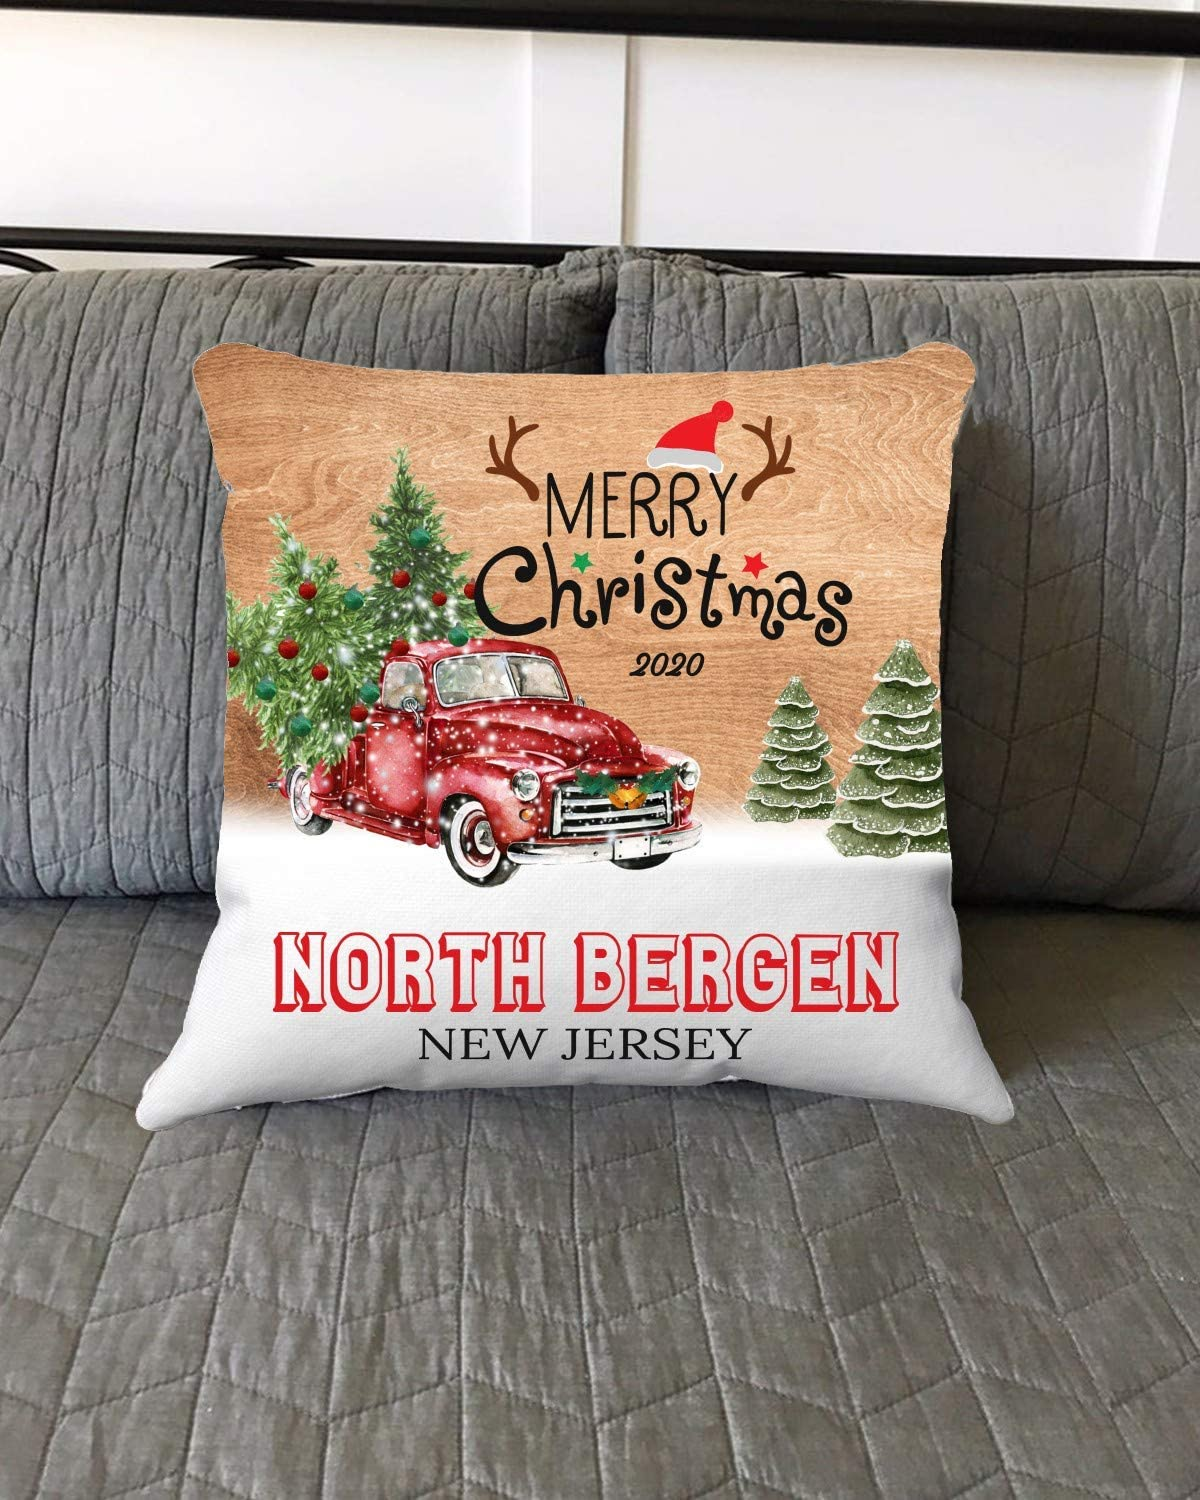 Merry Christmas North Bergen New Jersey NJ State 2020 - Home Decorations for Living Room, Couch Sofa Home Throw Pillow Covers 18x18 Inches - Hometown for Family, Friend